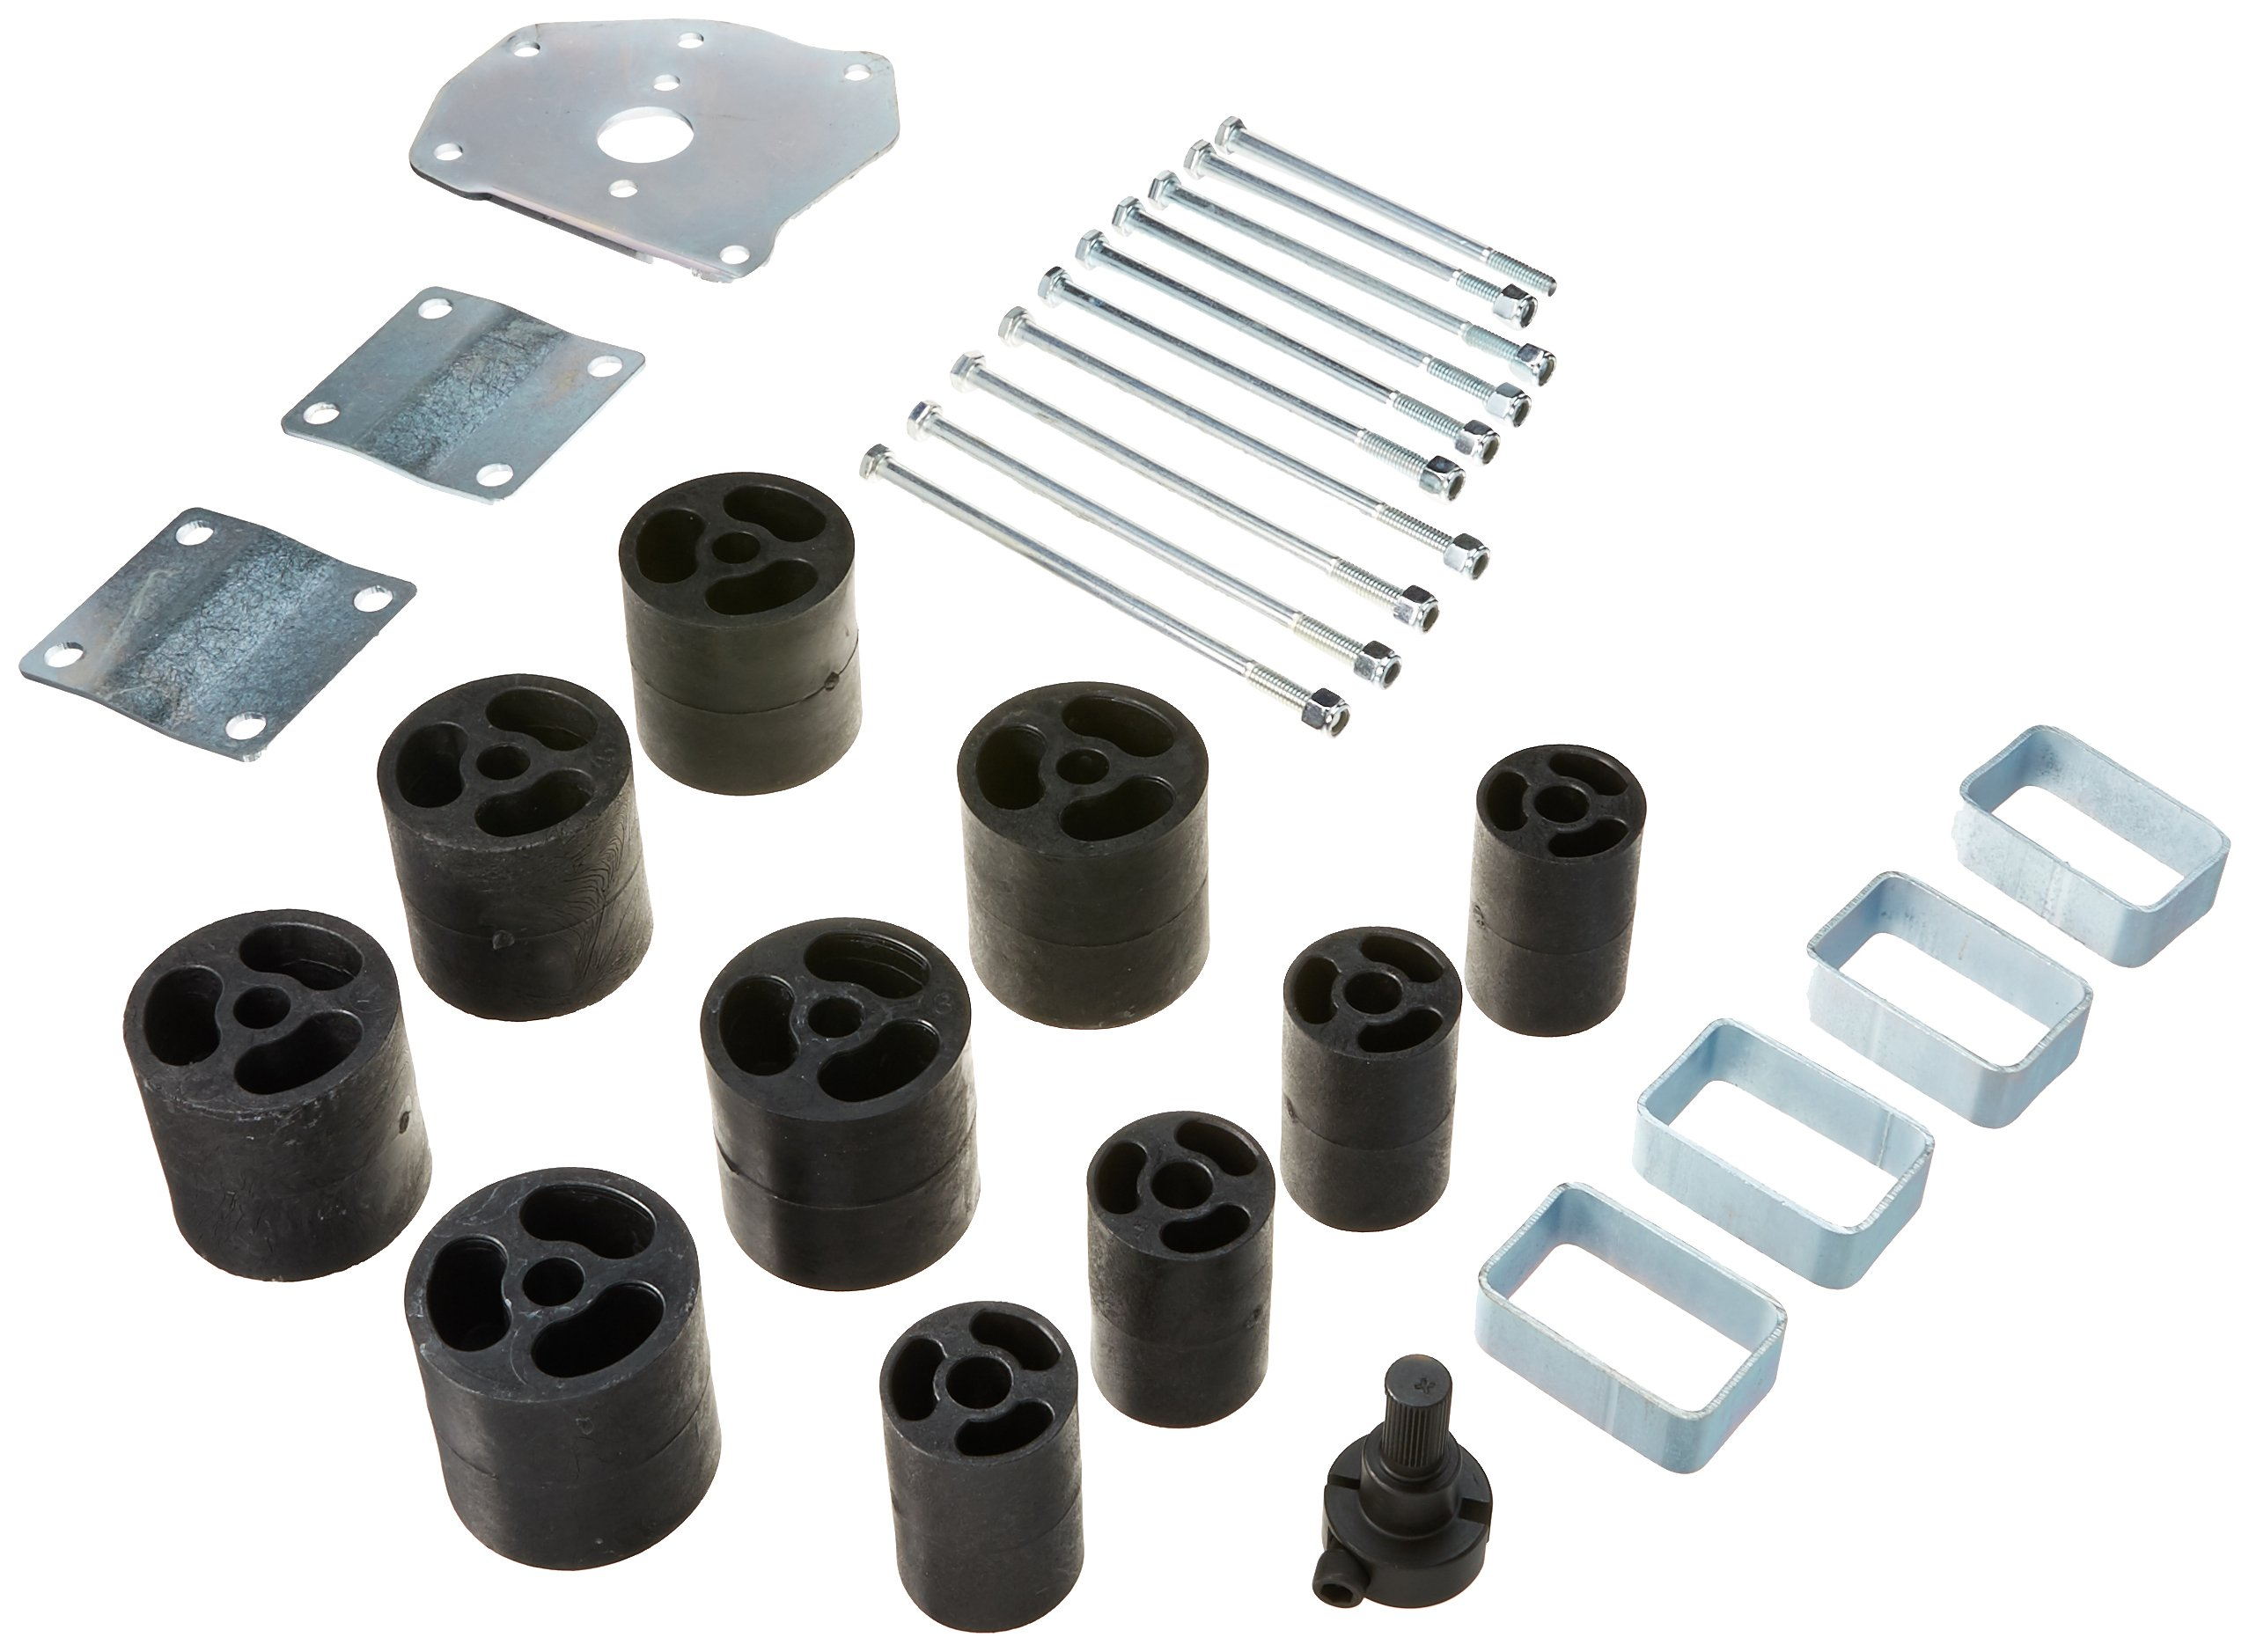 Performance Accessories, Toyota 4 Runner 4WD Manual (Except Auto Modified) 3'' Body Lift Kit, fits 1990 to 1995, PA5513M, Made in America by Performance Accessories (Image #1)